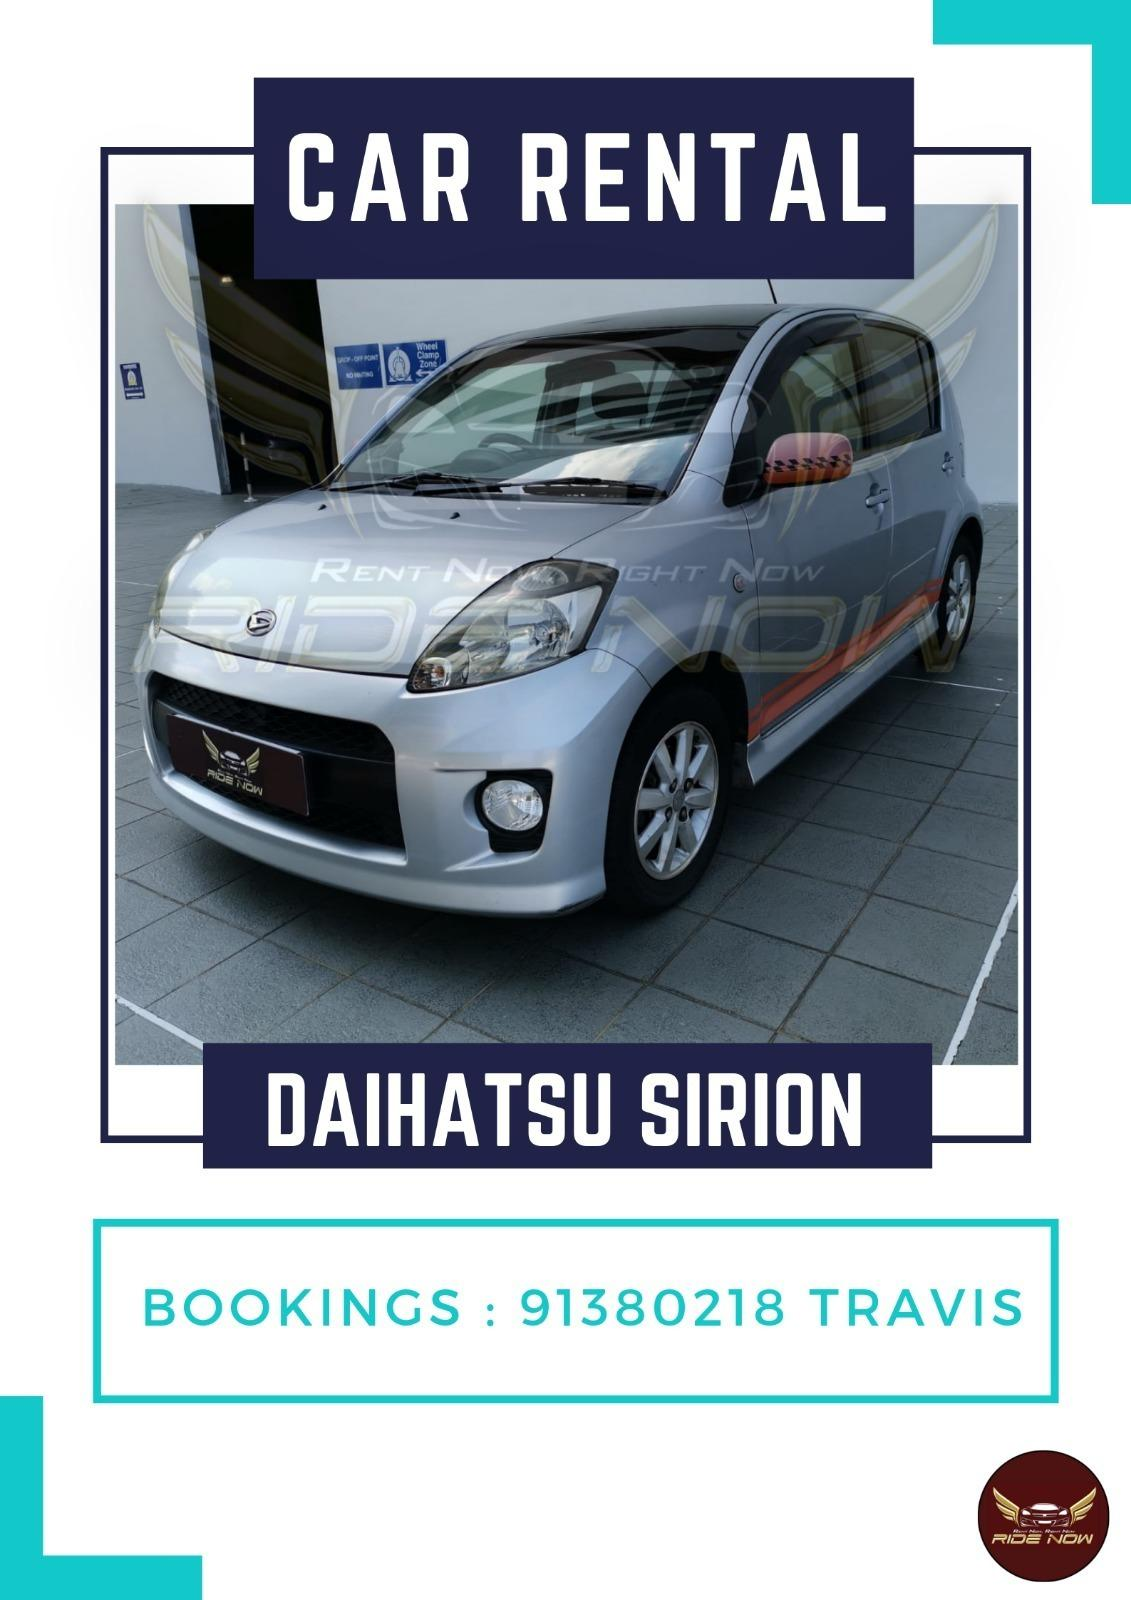 Daihatsu Sirion 1.5A Compact Hatchback. Good Fuel Efficiency Perfect for High Mileage